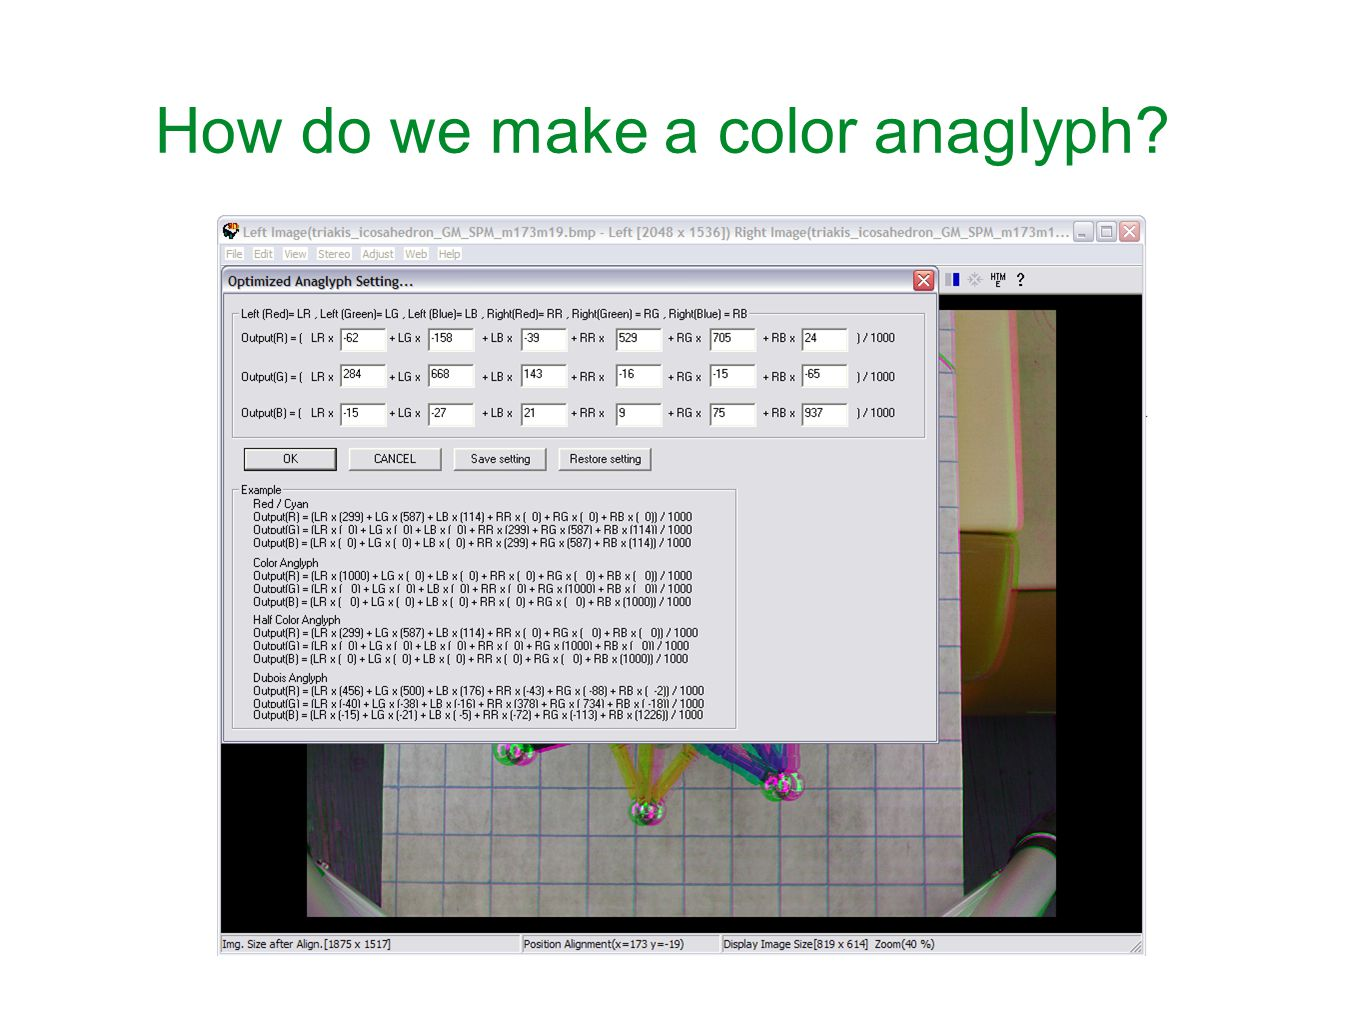 How do we make a color anaglyph?